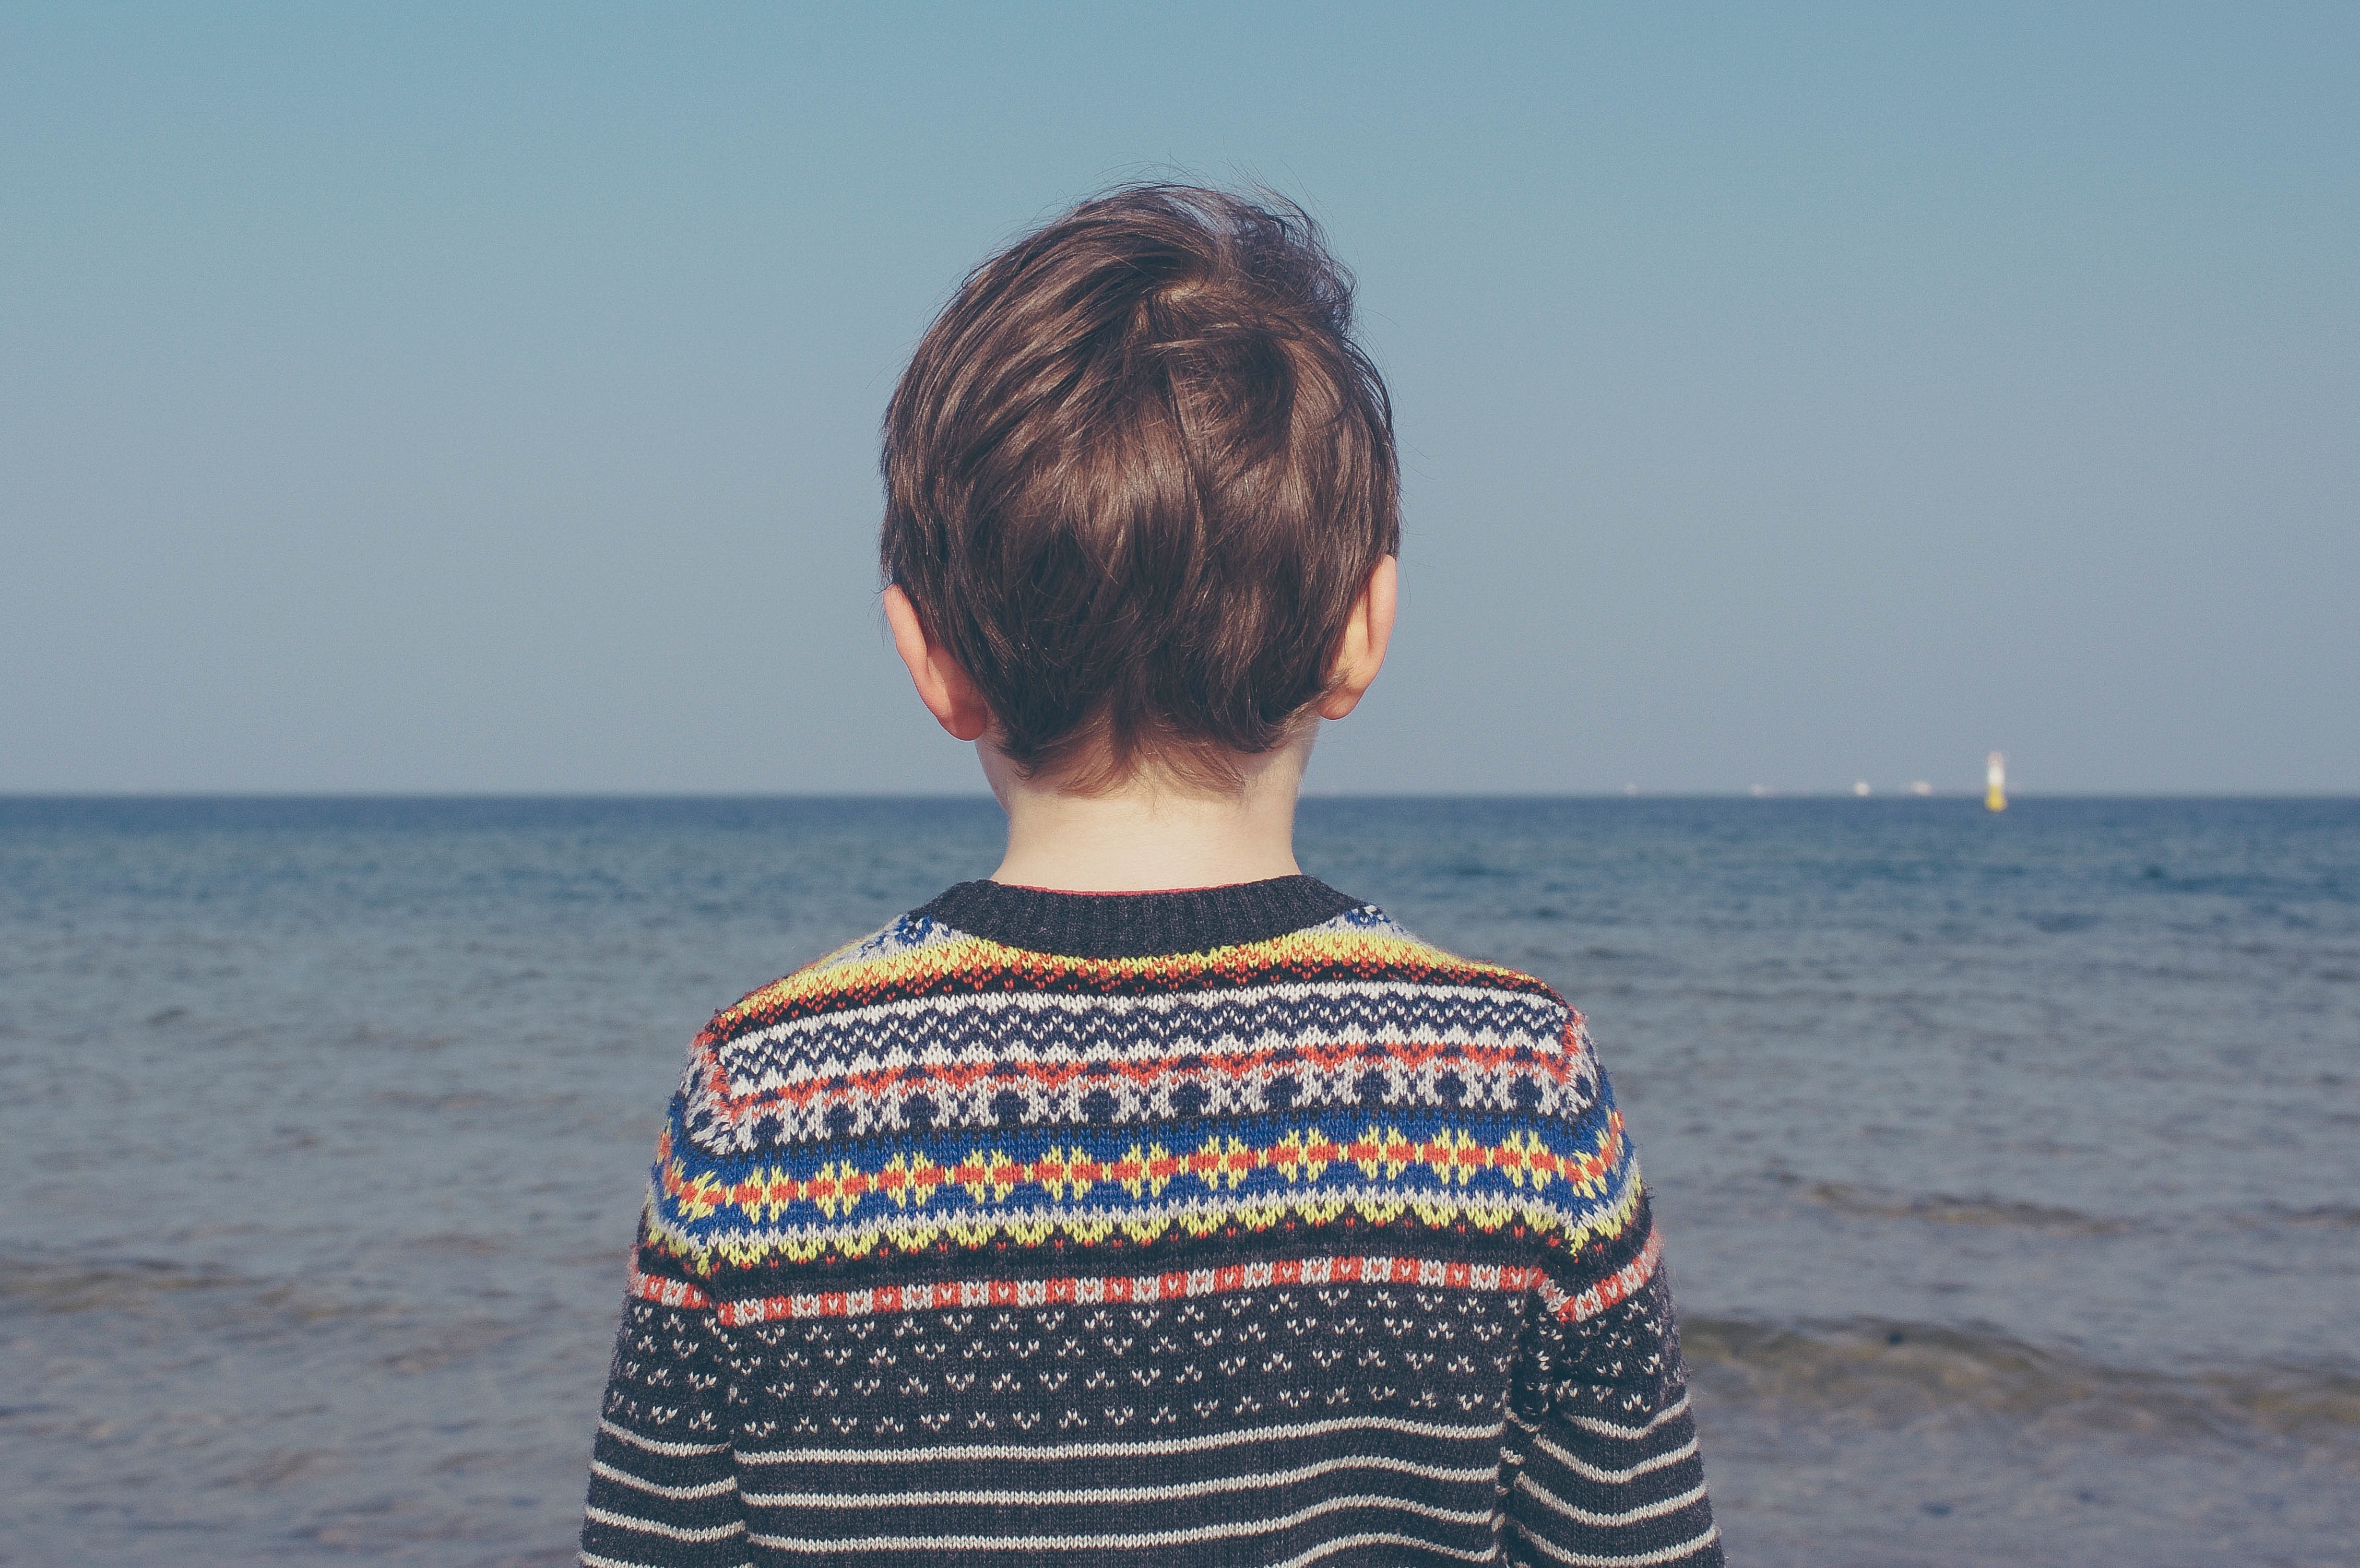 Child looking out at ocean